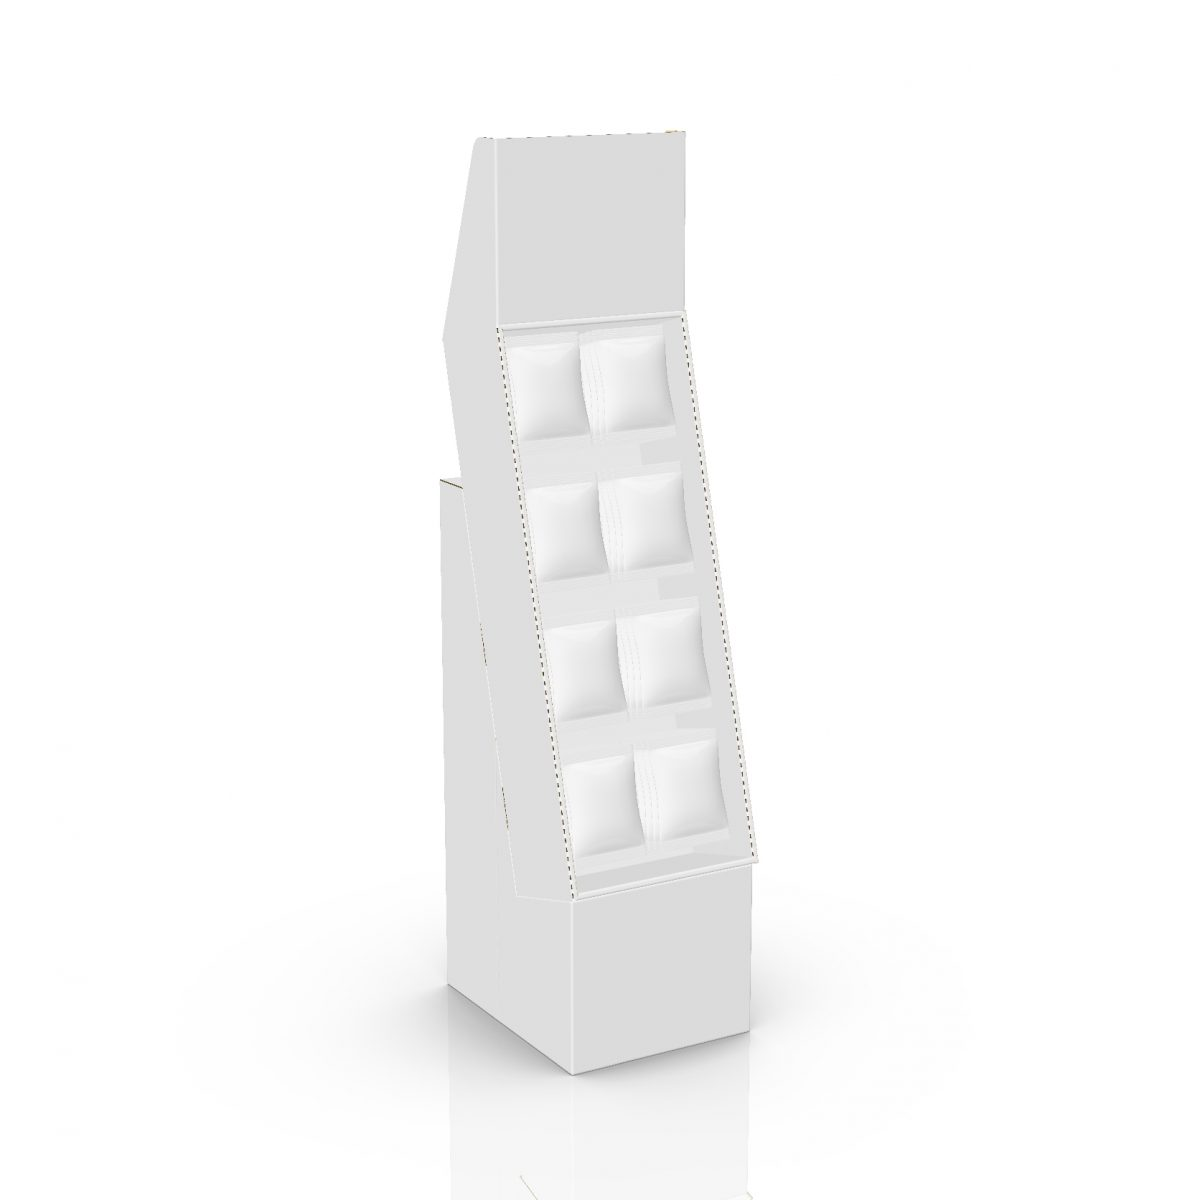 Cardboard floor peg display with header and 4 shelves, placed on a base - 3d